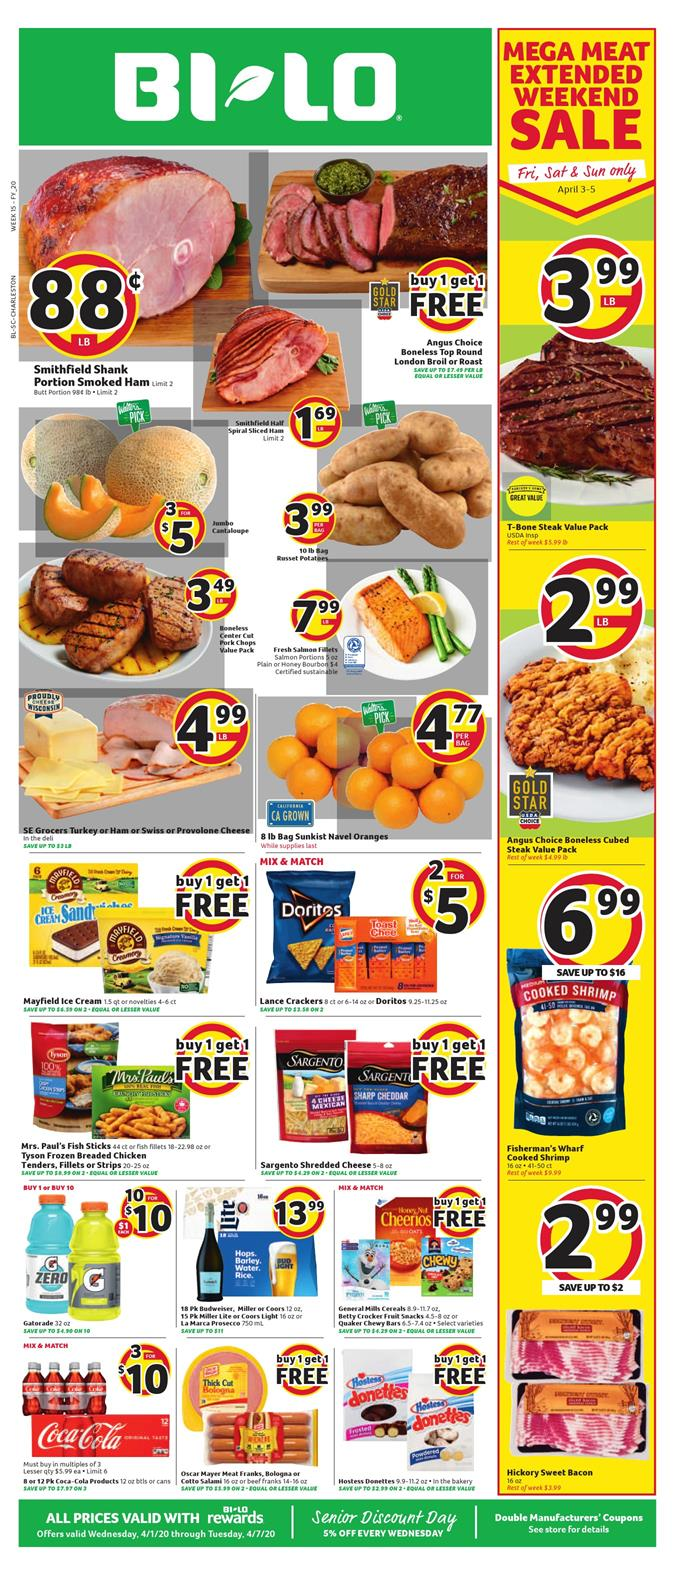 bilo april weekly ad valid from apr 1 7 2020